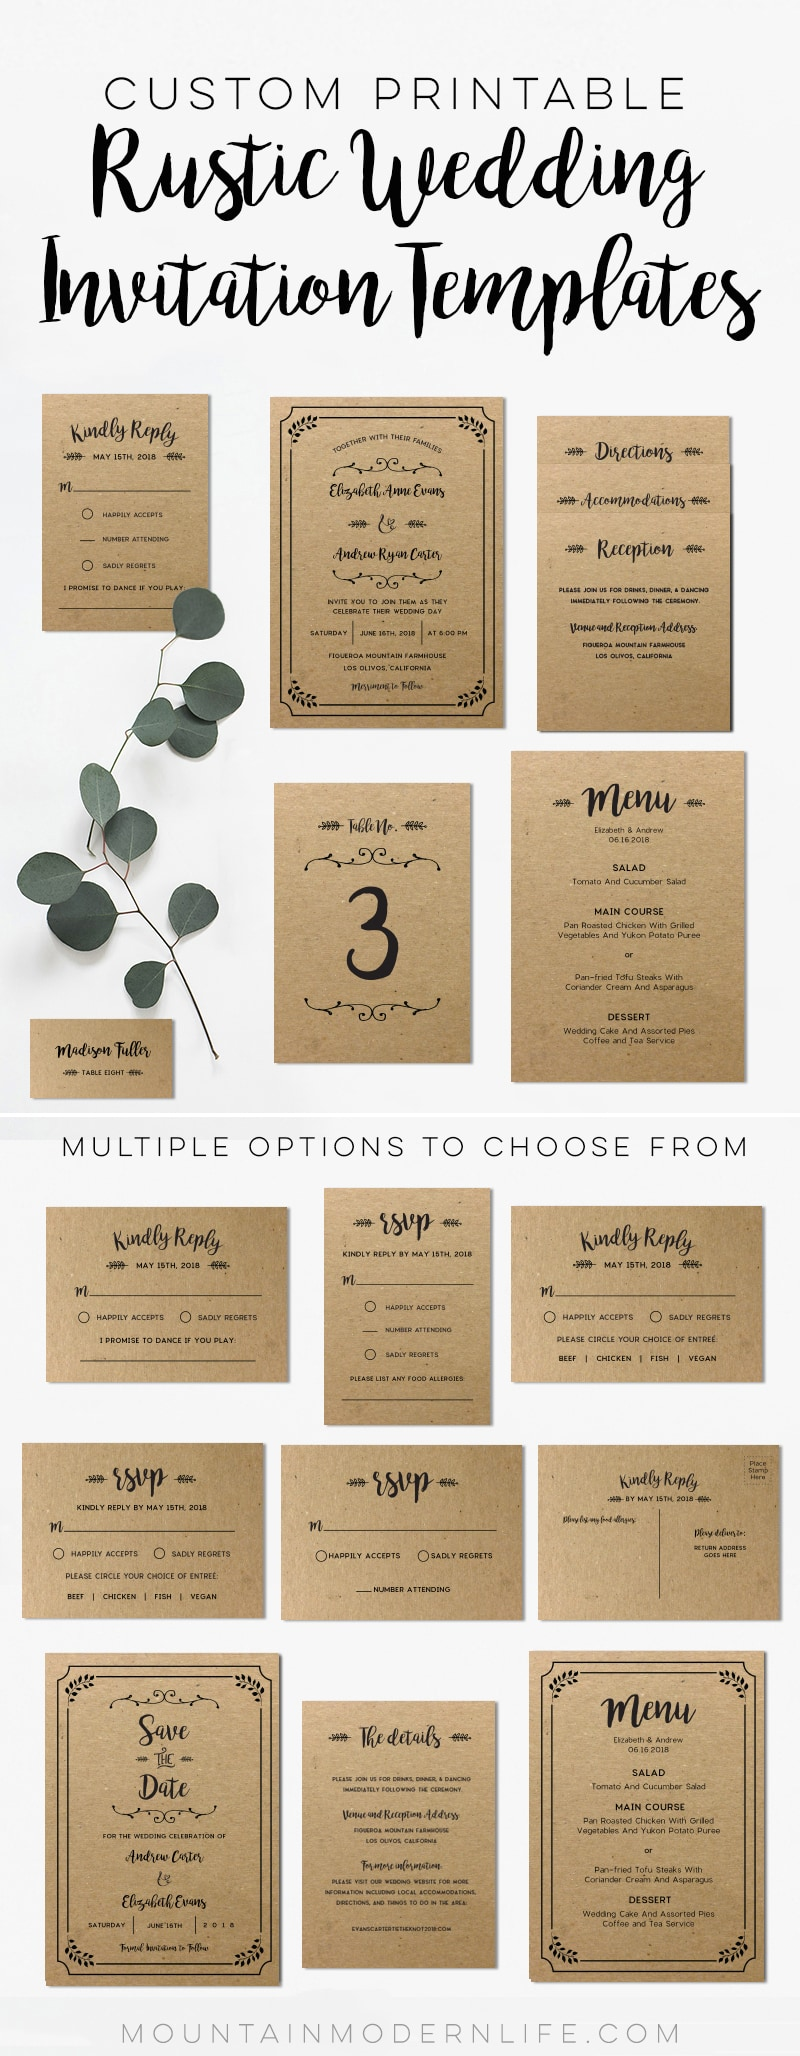 Save time and money with these custom rustic wedding invitation templates - print as many copies as you need! MountainModernLife.com